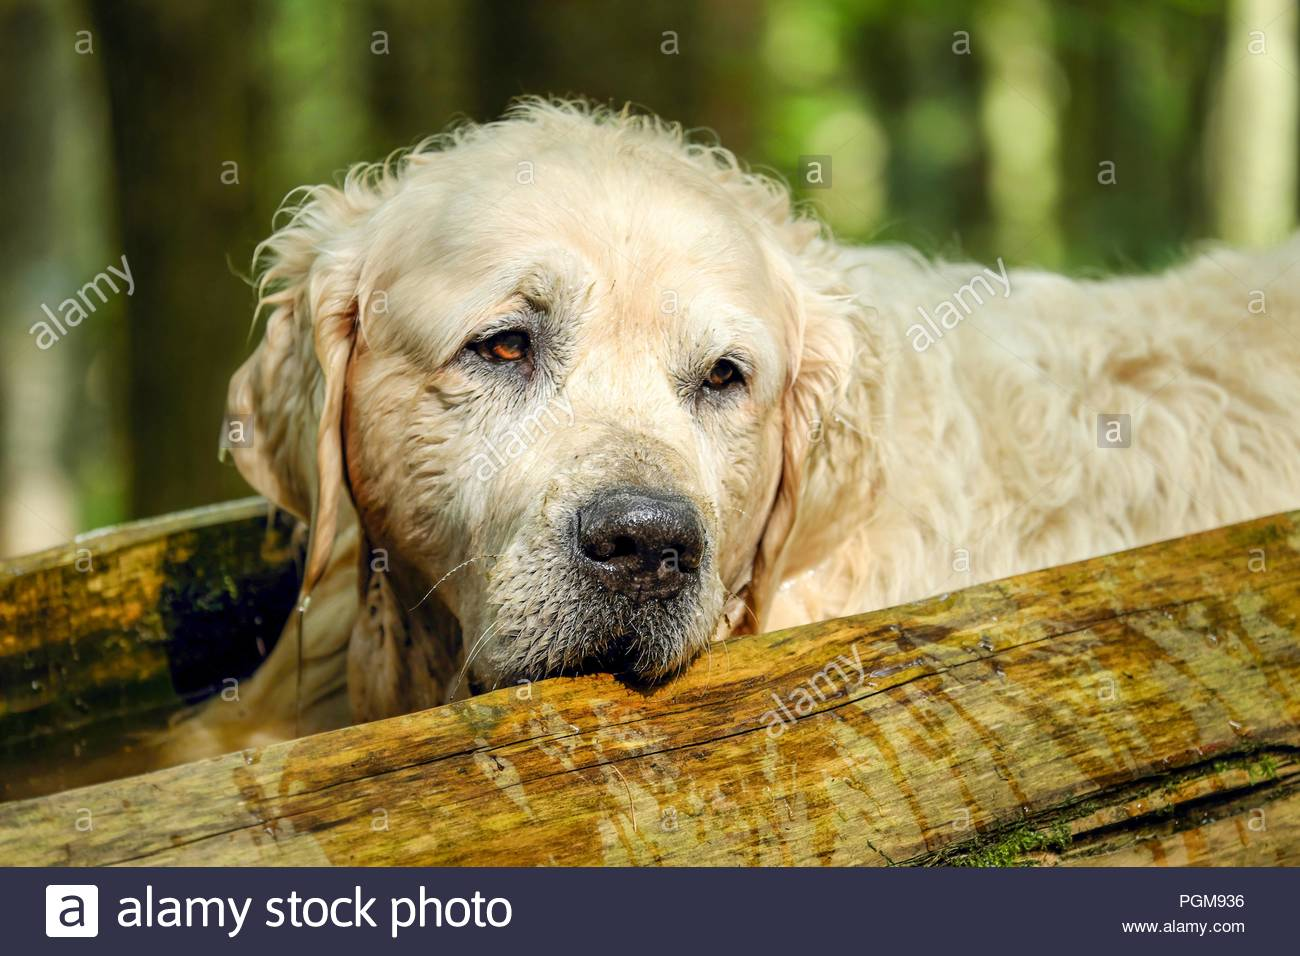 Golden Retriever White Light Brown Dog Pet Animal Sleeping Friend